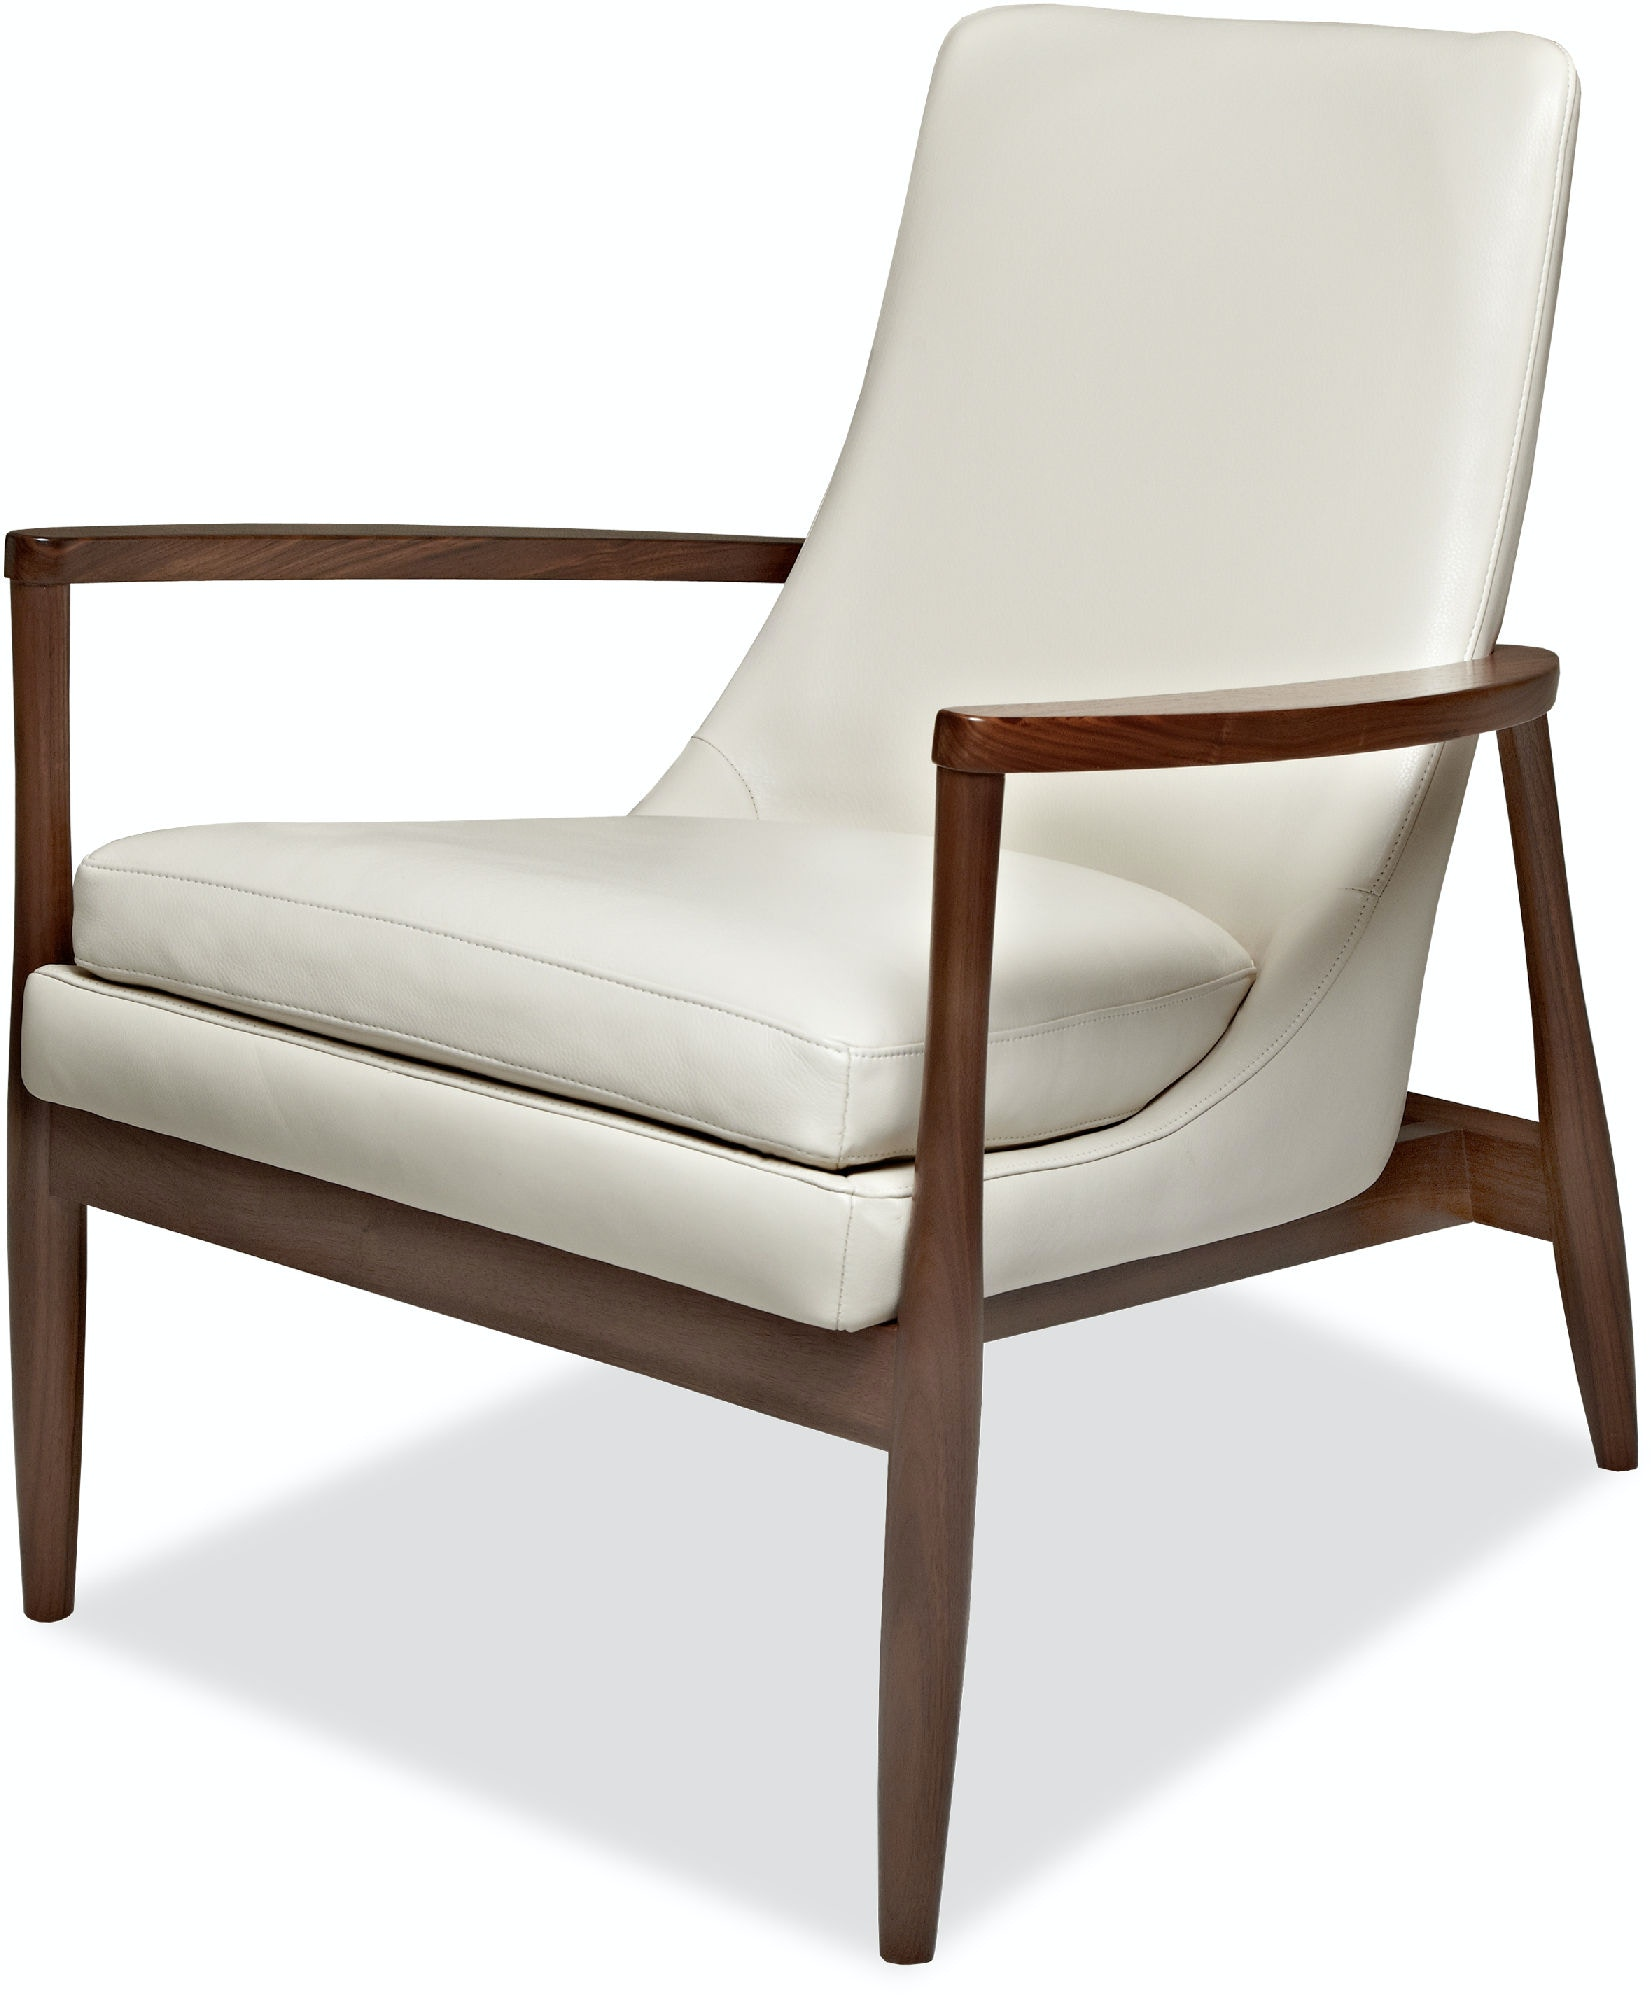 american leather living room aaron chair aro-chr-st - toms-price